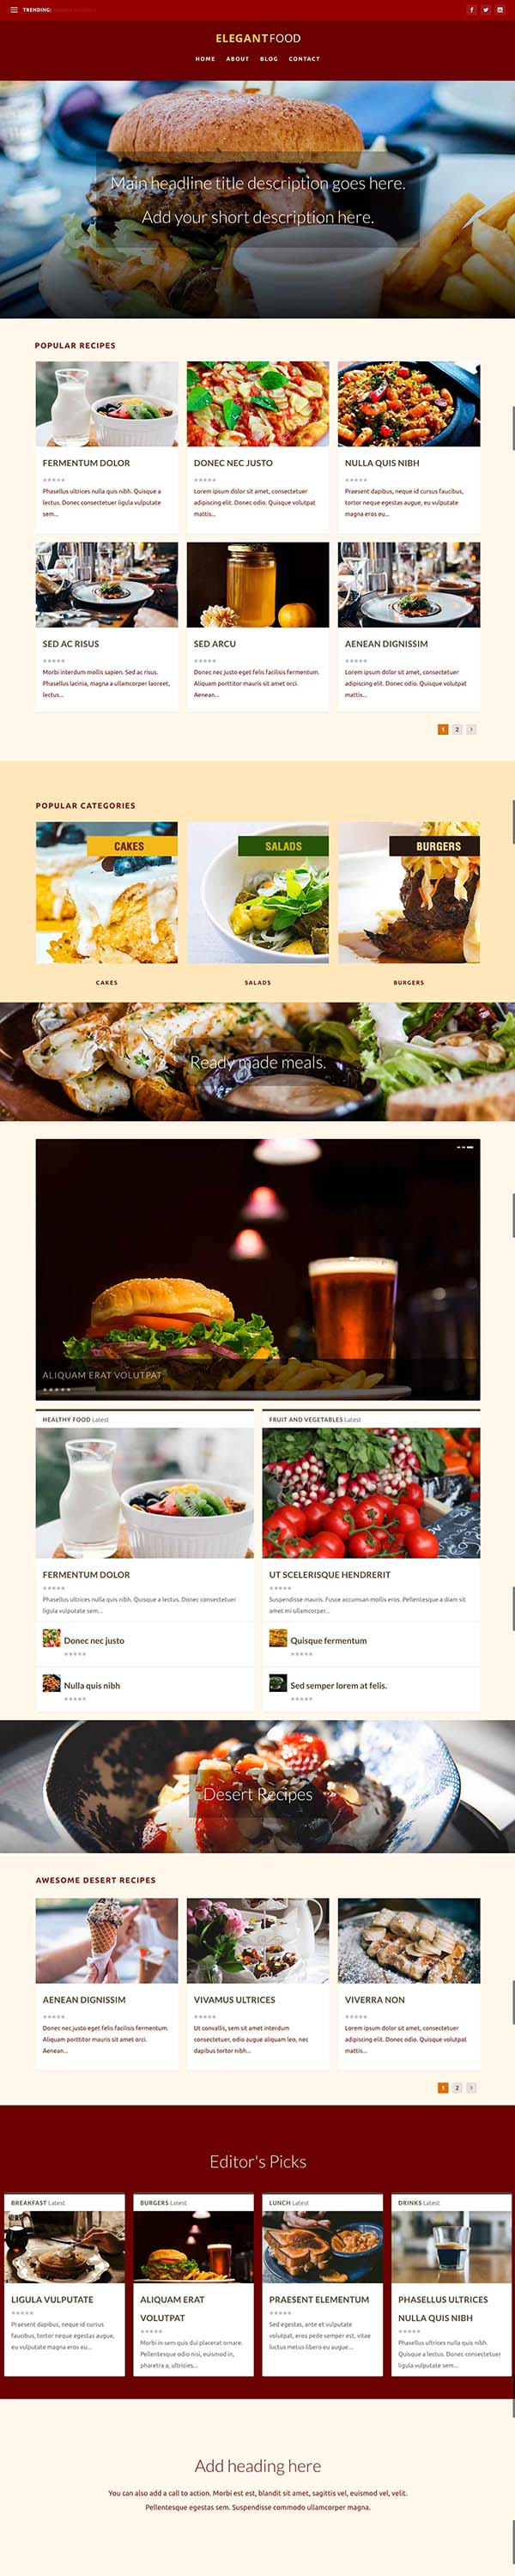 food-blog-category-layout-for-extra-full